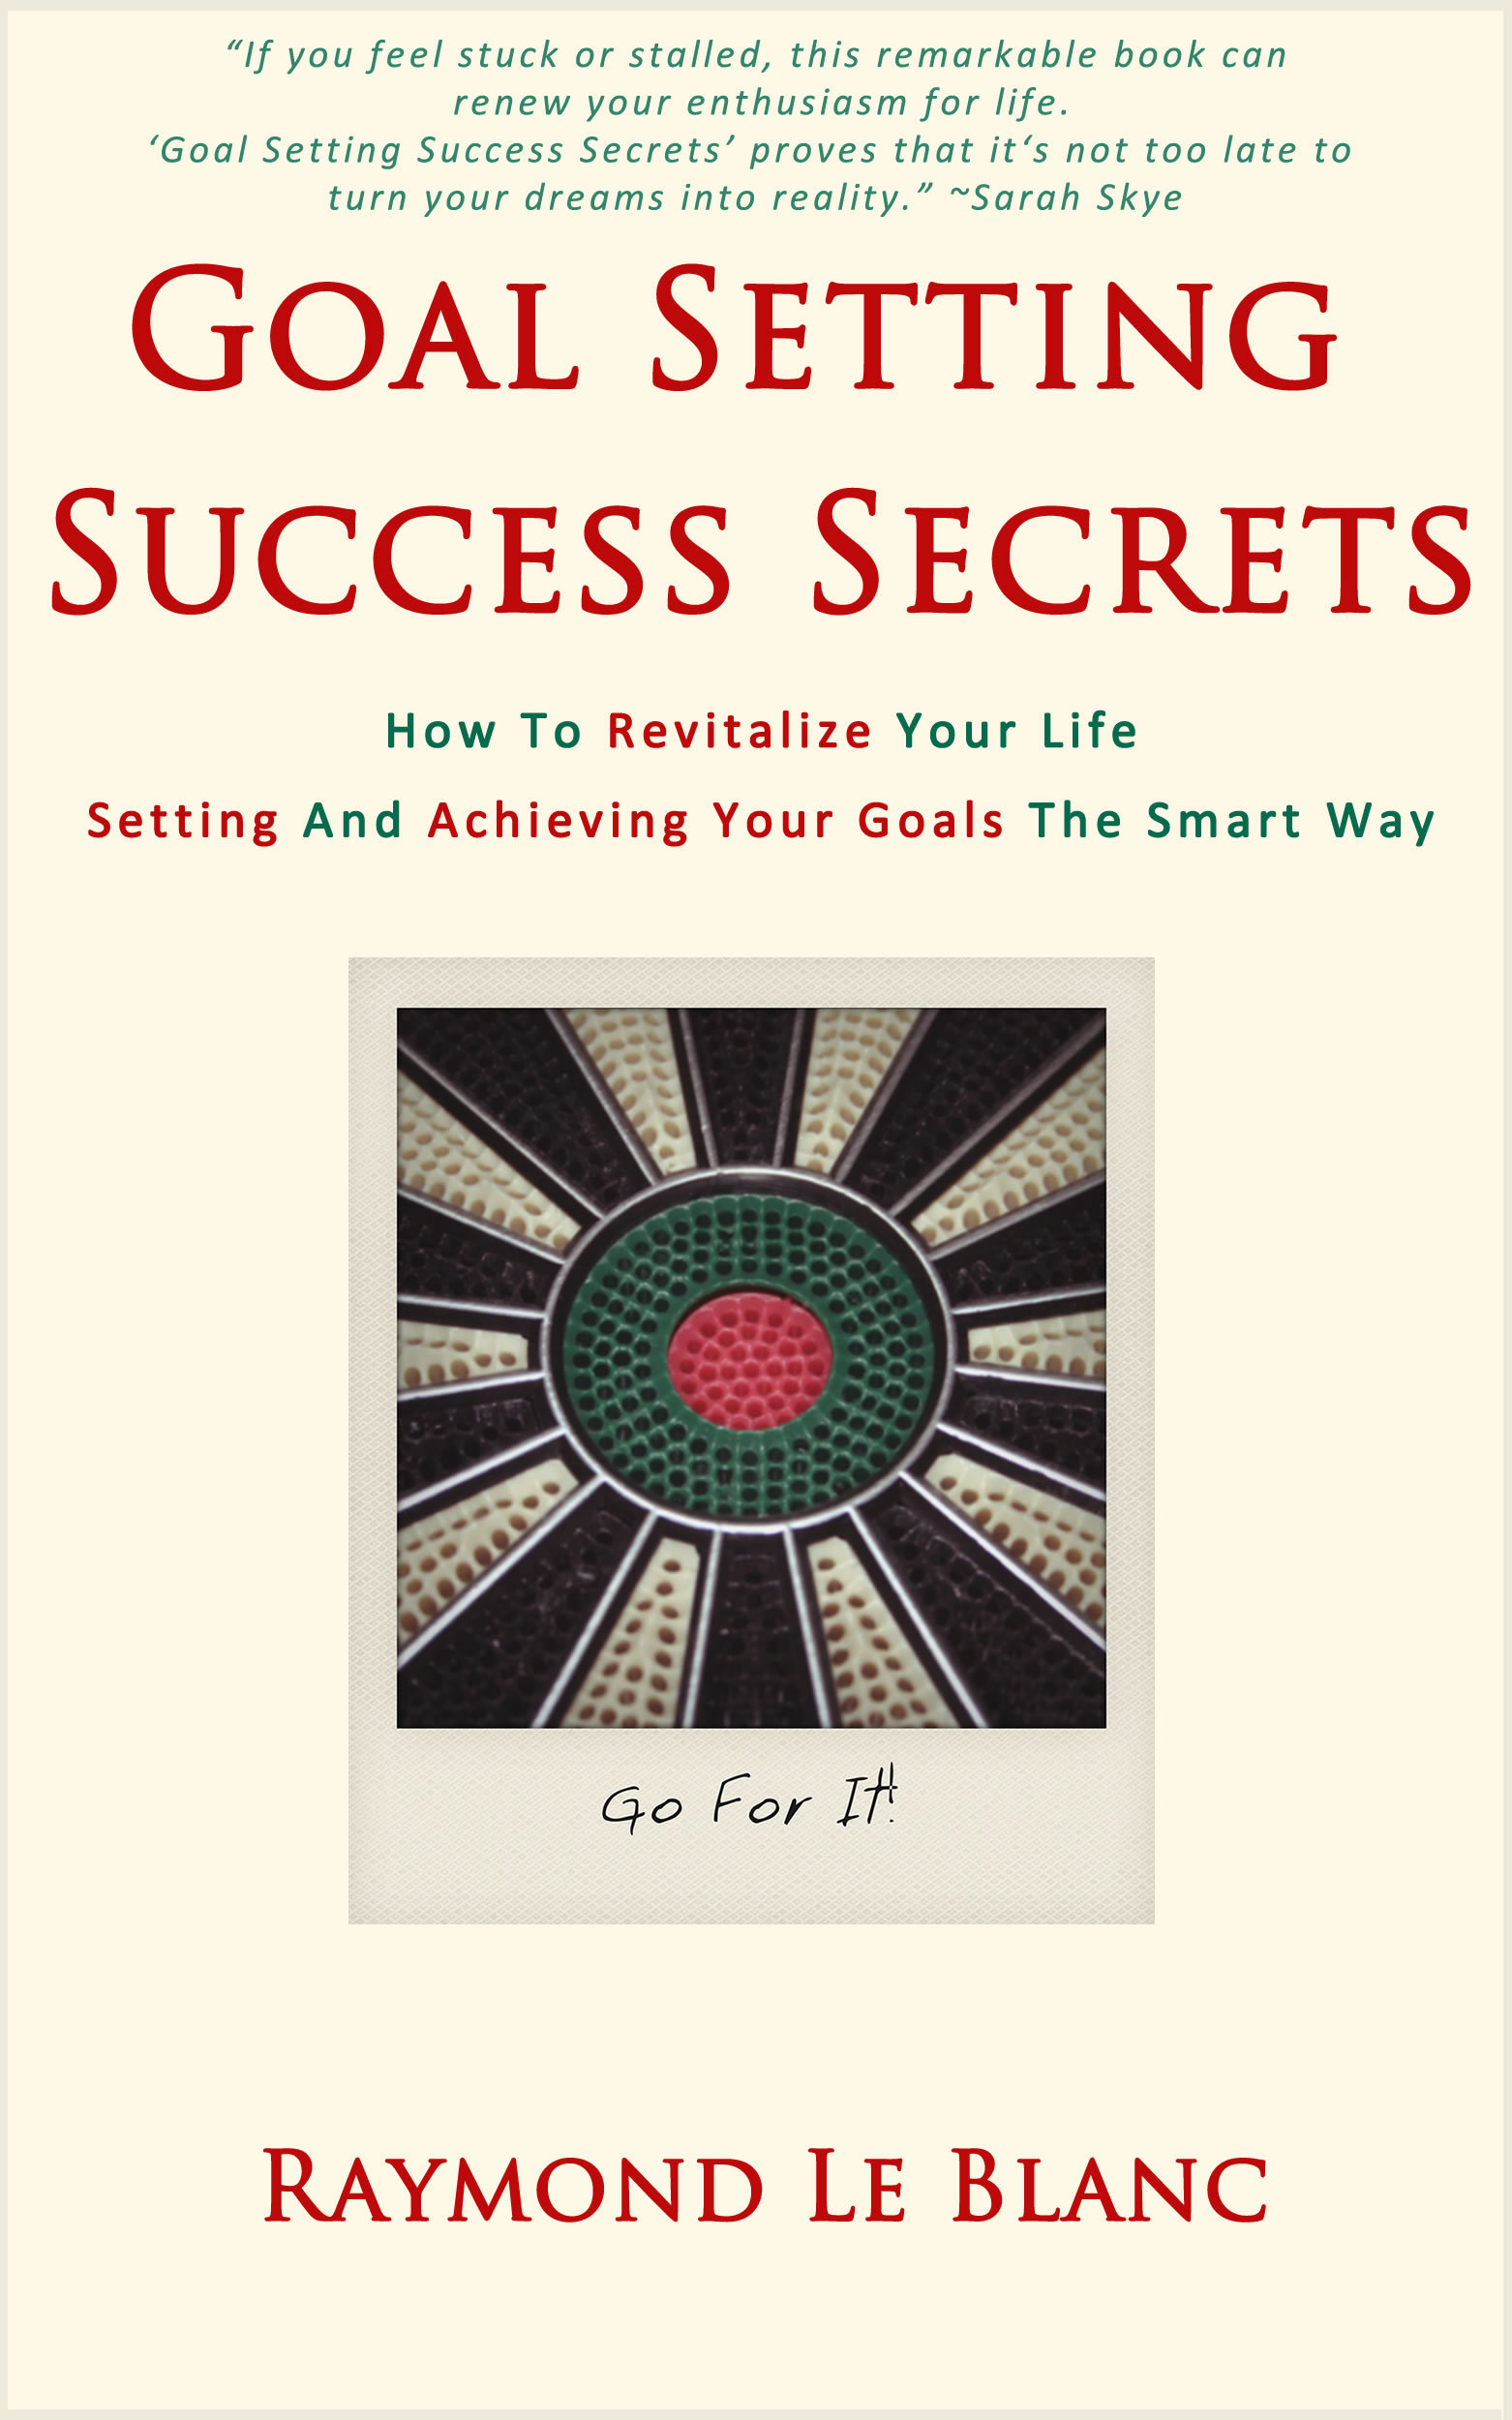 Goal Setting Success Secrets. How To Revitalize Your Life.: Setting And Achieving Your Goals The Smart Way.